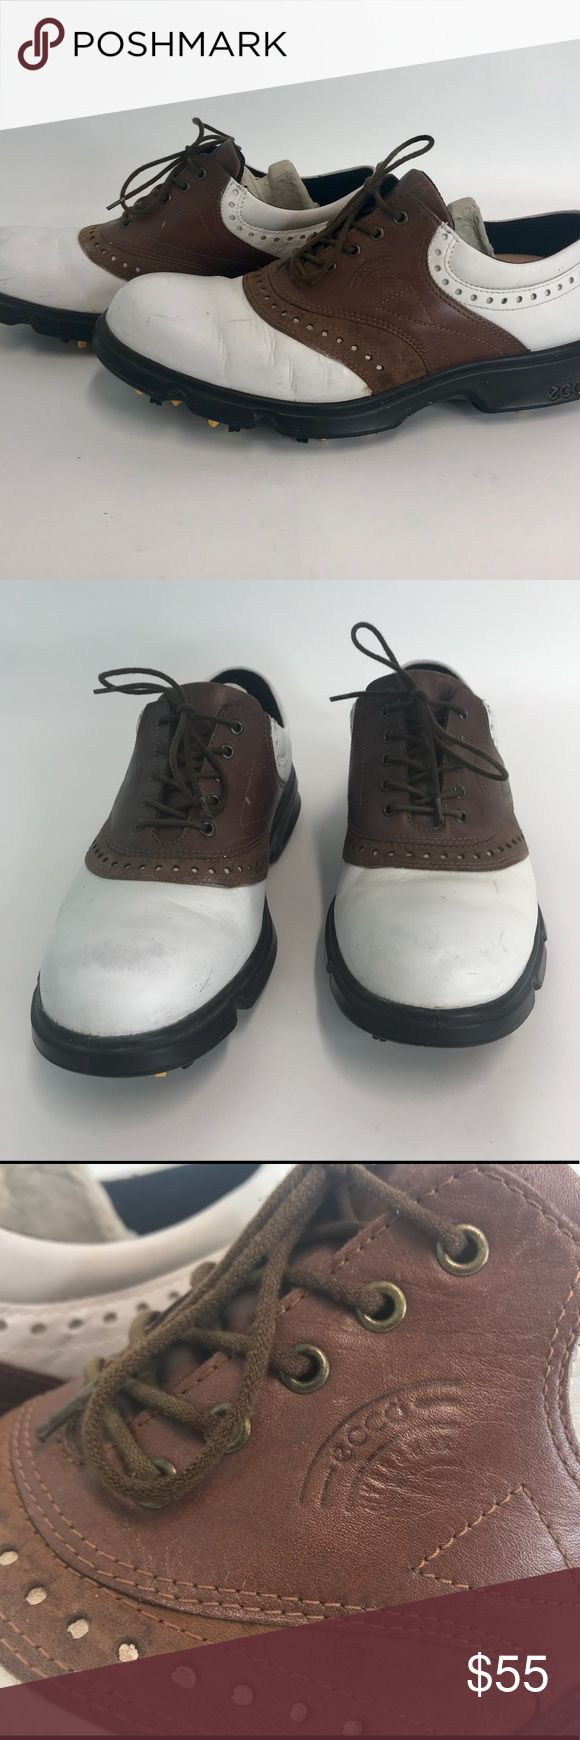 ECCO Men's Hydromax Golf Shoes Cleats US Size 10 ECCO Men's Hydromax Golf Shoes Cleats US Size 10 EUR 43 Brown White  These are very nice preowned leather golf shoes. They show some very minor signs of wear but overall are in excellent condition. The cardboard insert has always been kept inside of them when not worn. Please enlarge all pictures for fine details.   Size: US 10 (EUR 43)  Shipping: I normally ship in one day (maybe 2).   Please check out all the pictures above because they are…